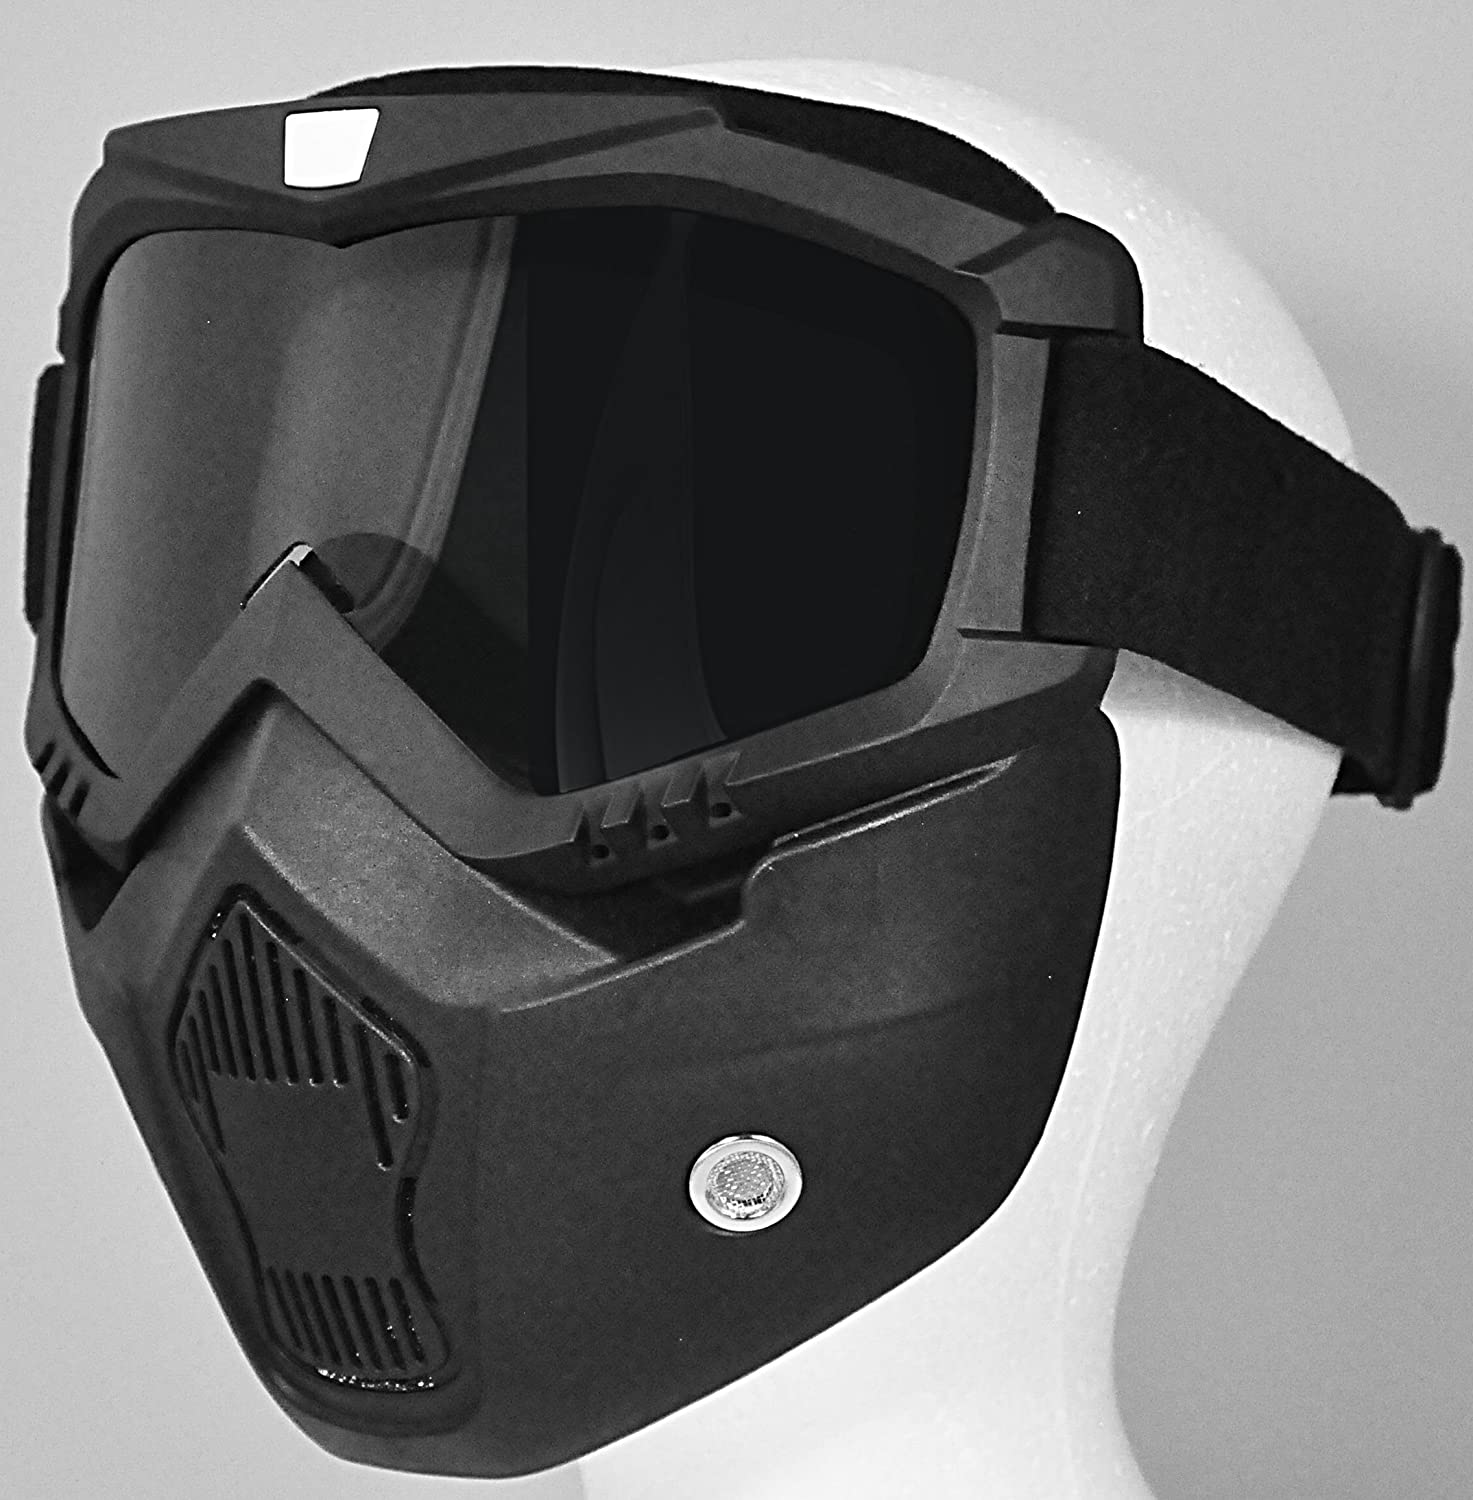 Black One Size T50 MASK TORC Unisex-Adult Goggle Mask for All Open Half Face Helmets